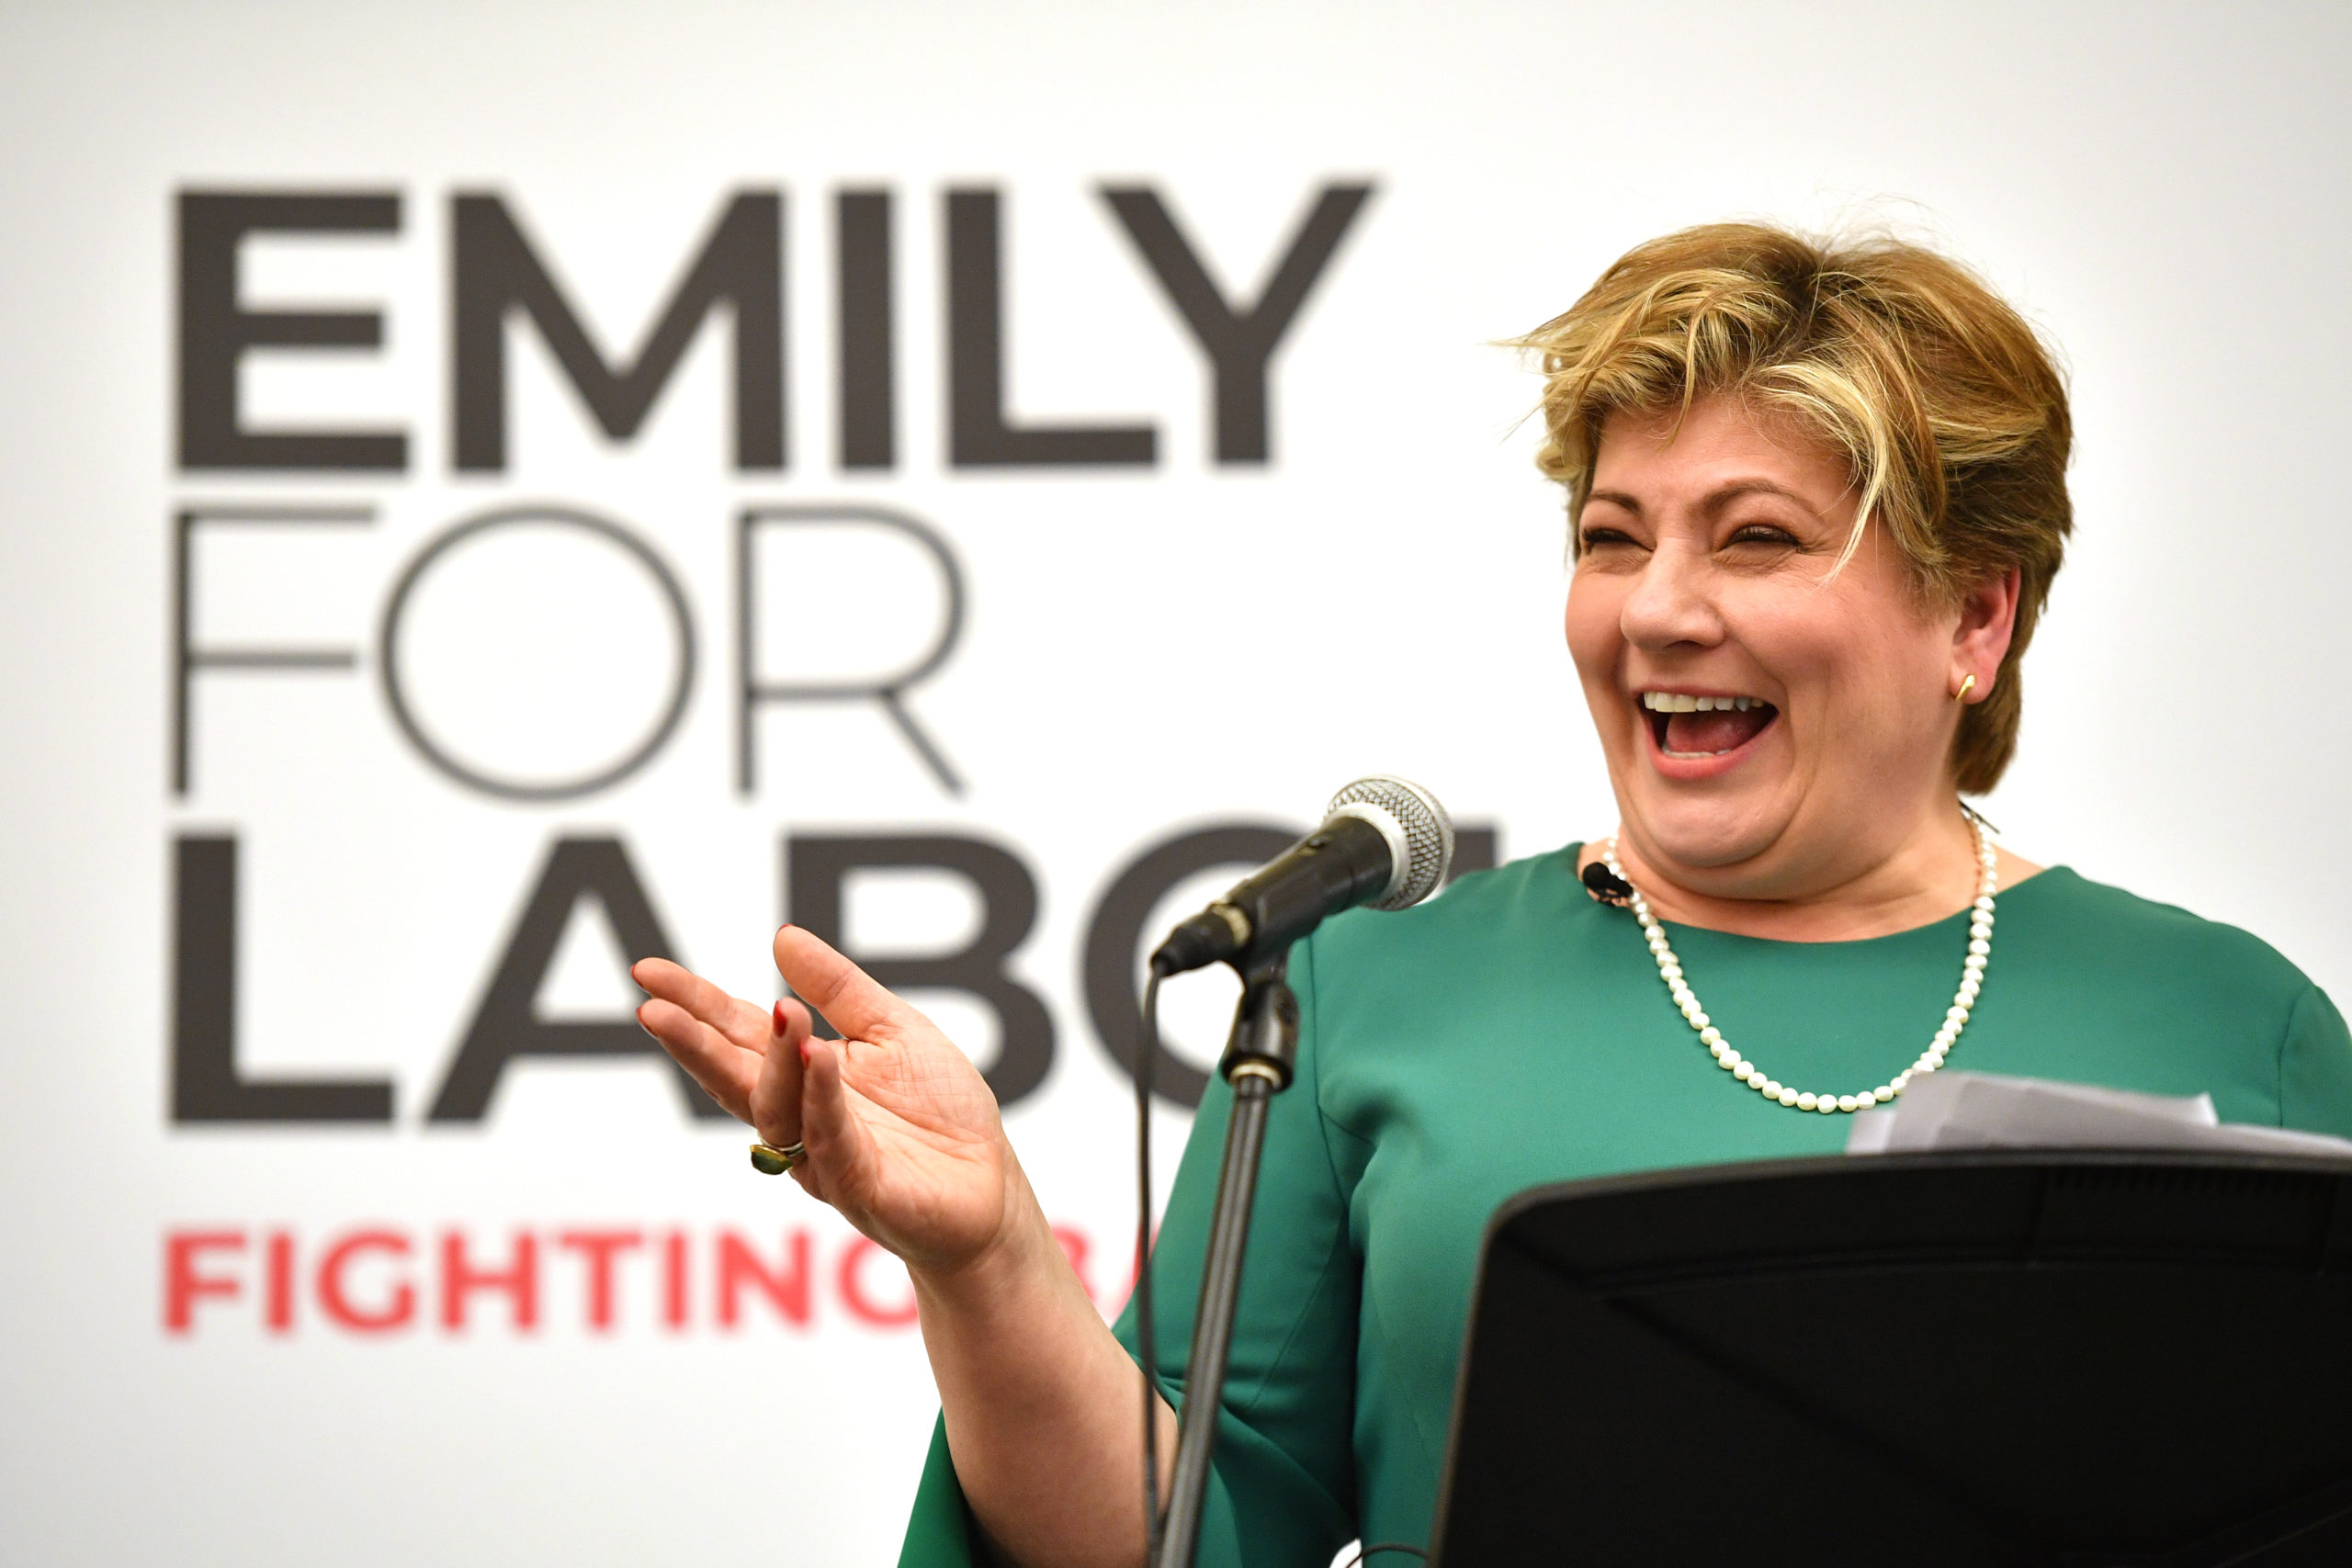 Labour Leadership Contender Emily Thornberry gestures as she speaks on stage during her Leadership Campaign Launch at Guildford Waterside Centre on January 17, 2020. (Leon Neal/Getty Images)